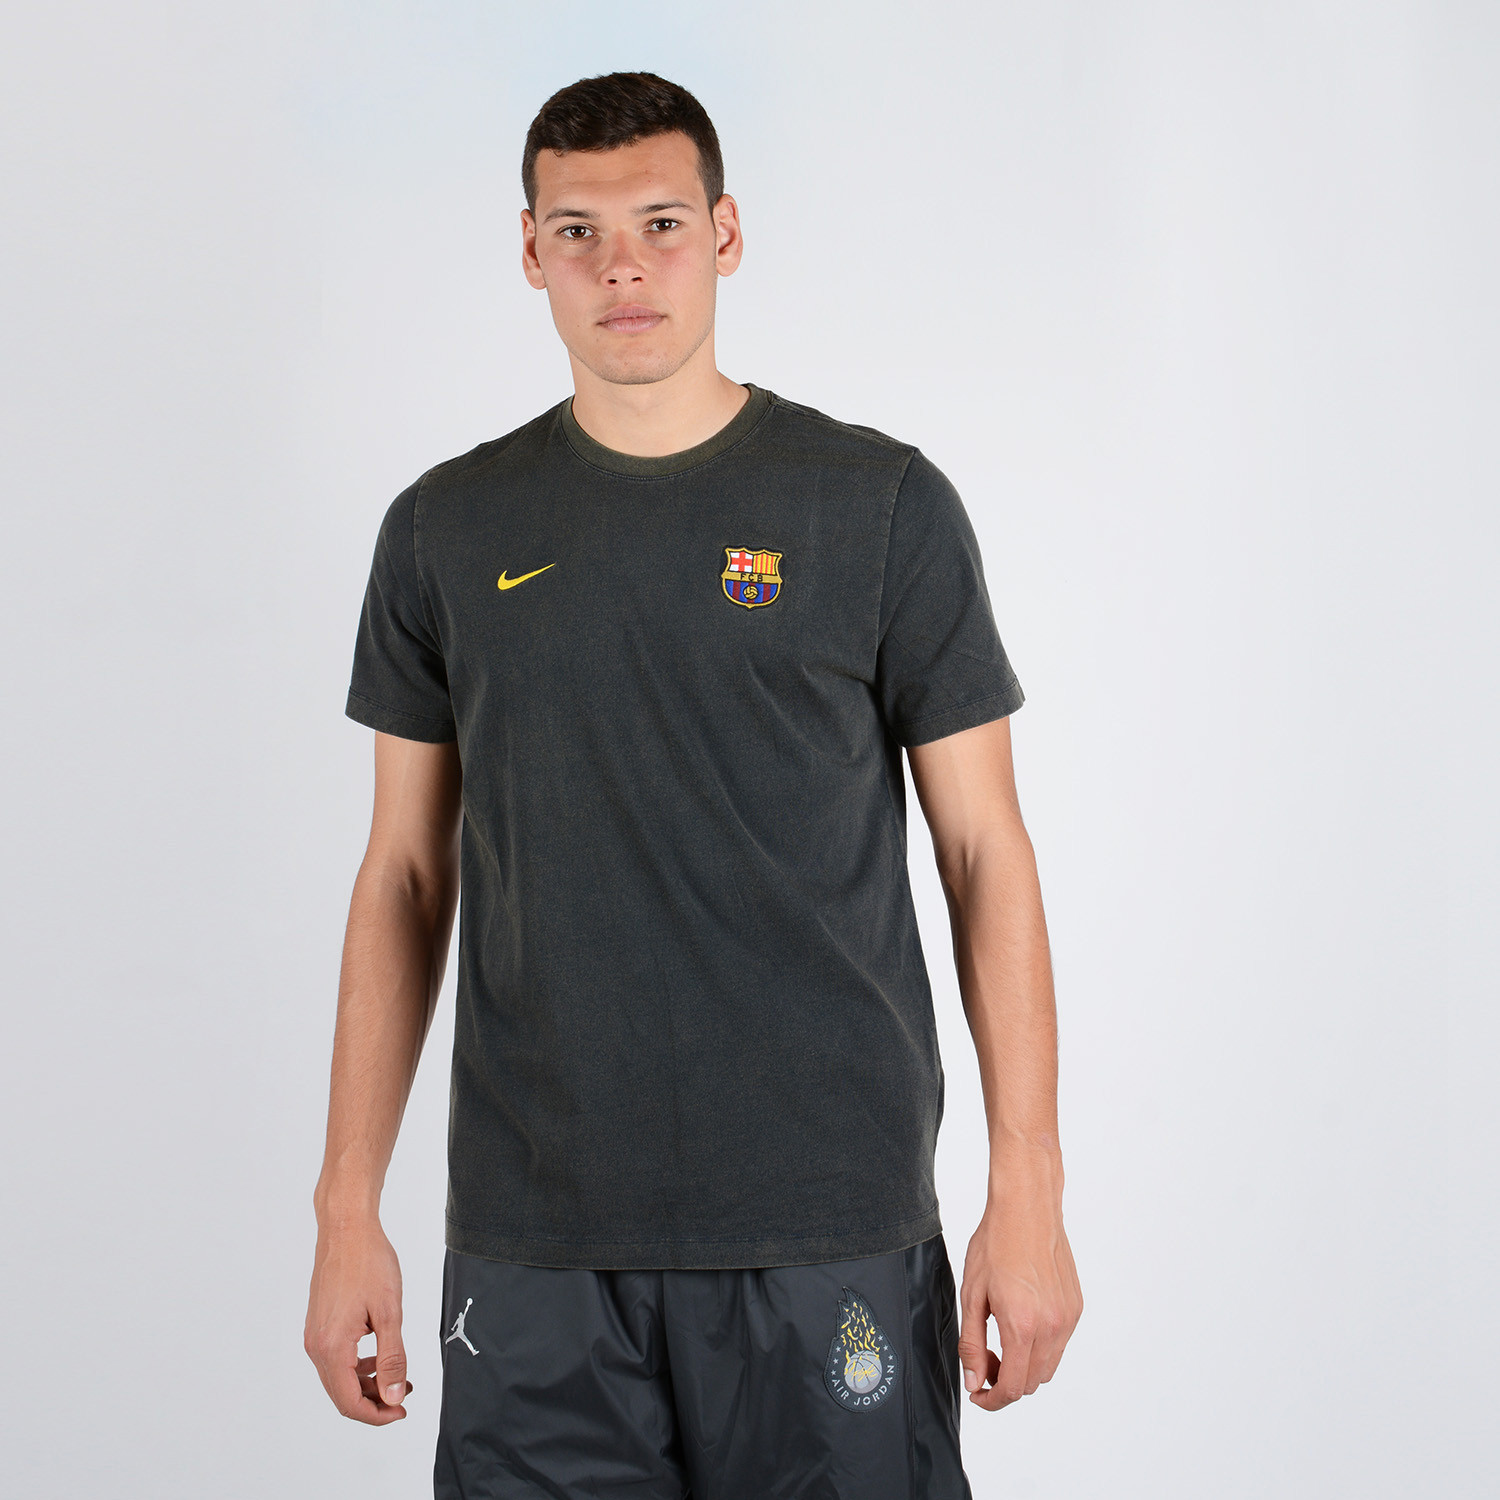 Nike Fc Barcelona Men'S Retro T-Shirt (9000044252_35009)